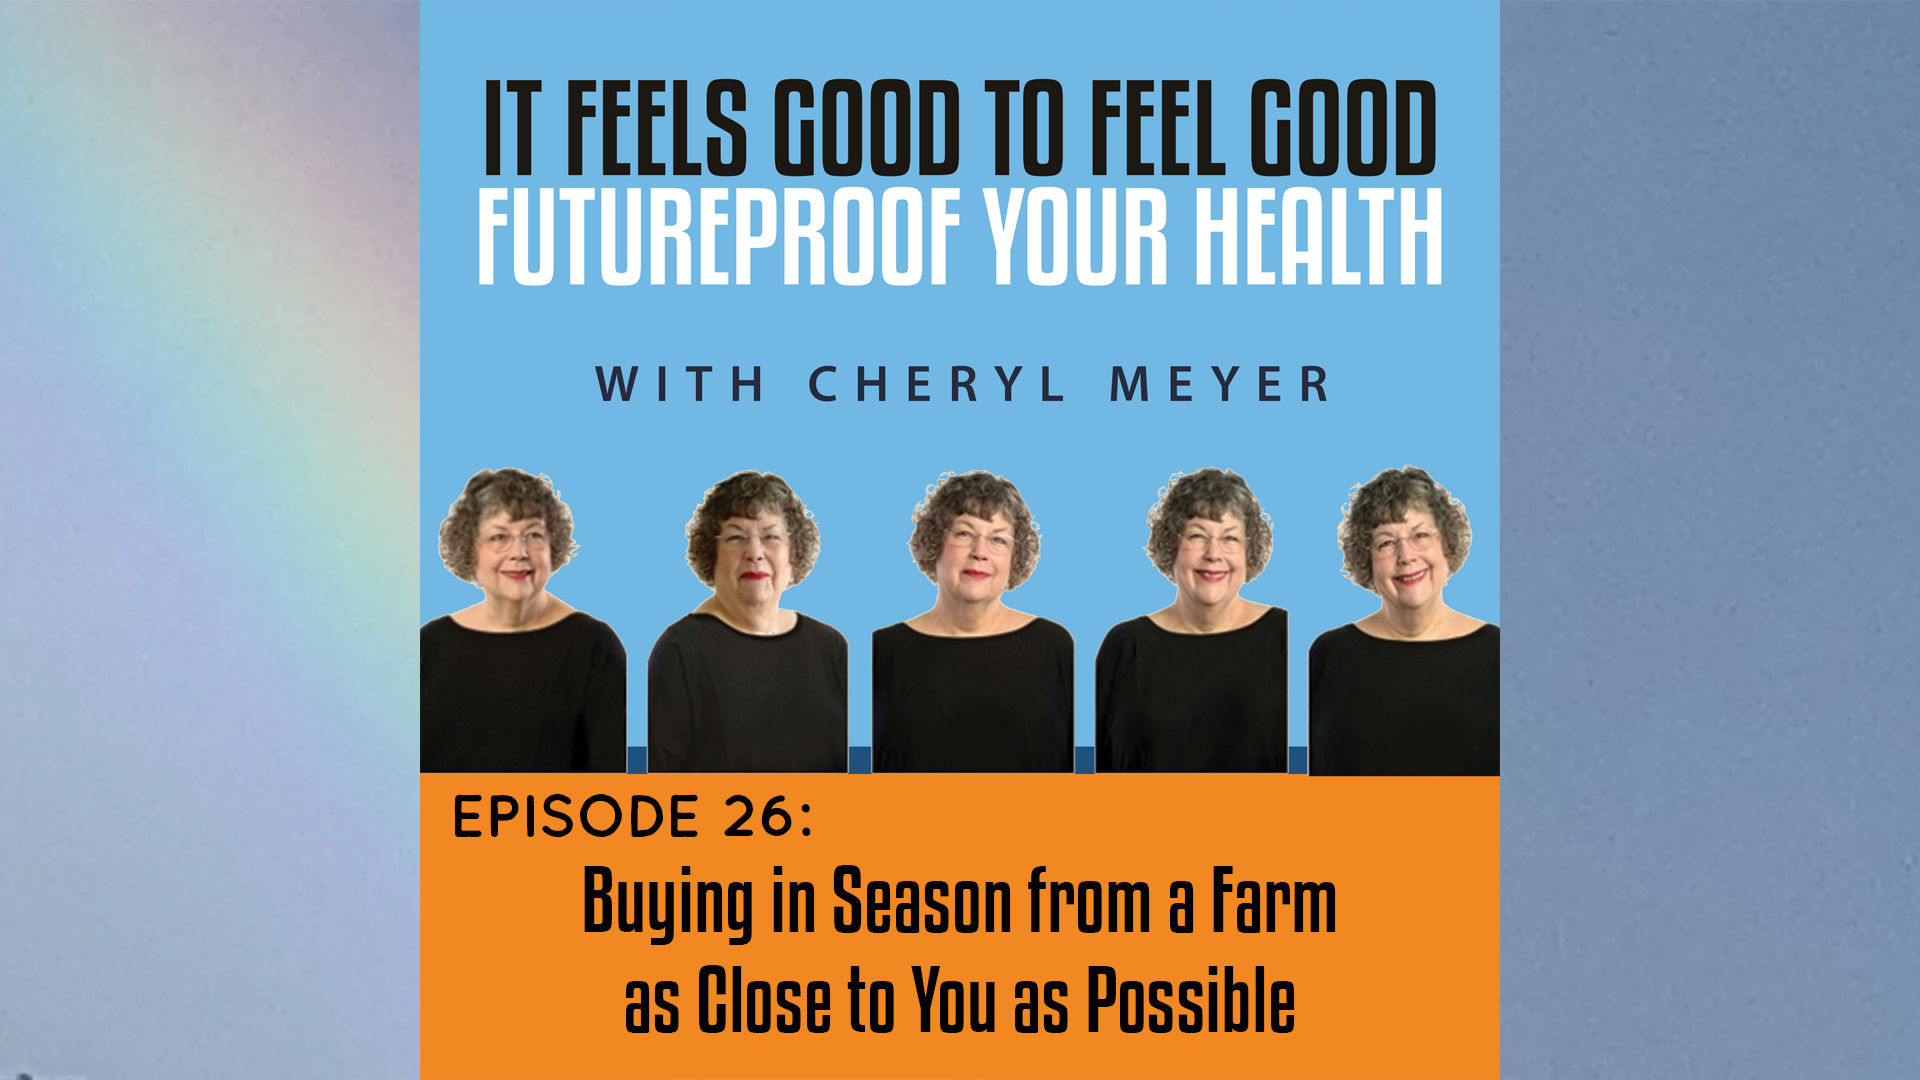 Episode 26 Buying In Season From A Farm As Close To You As Possible